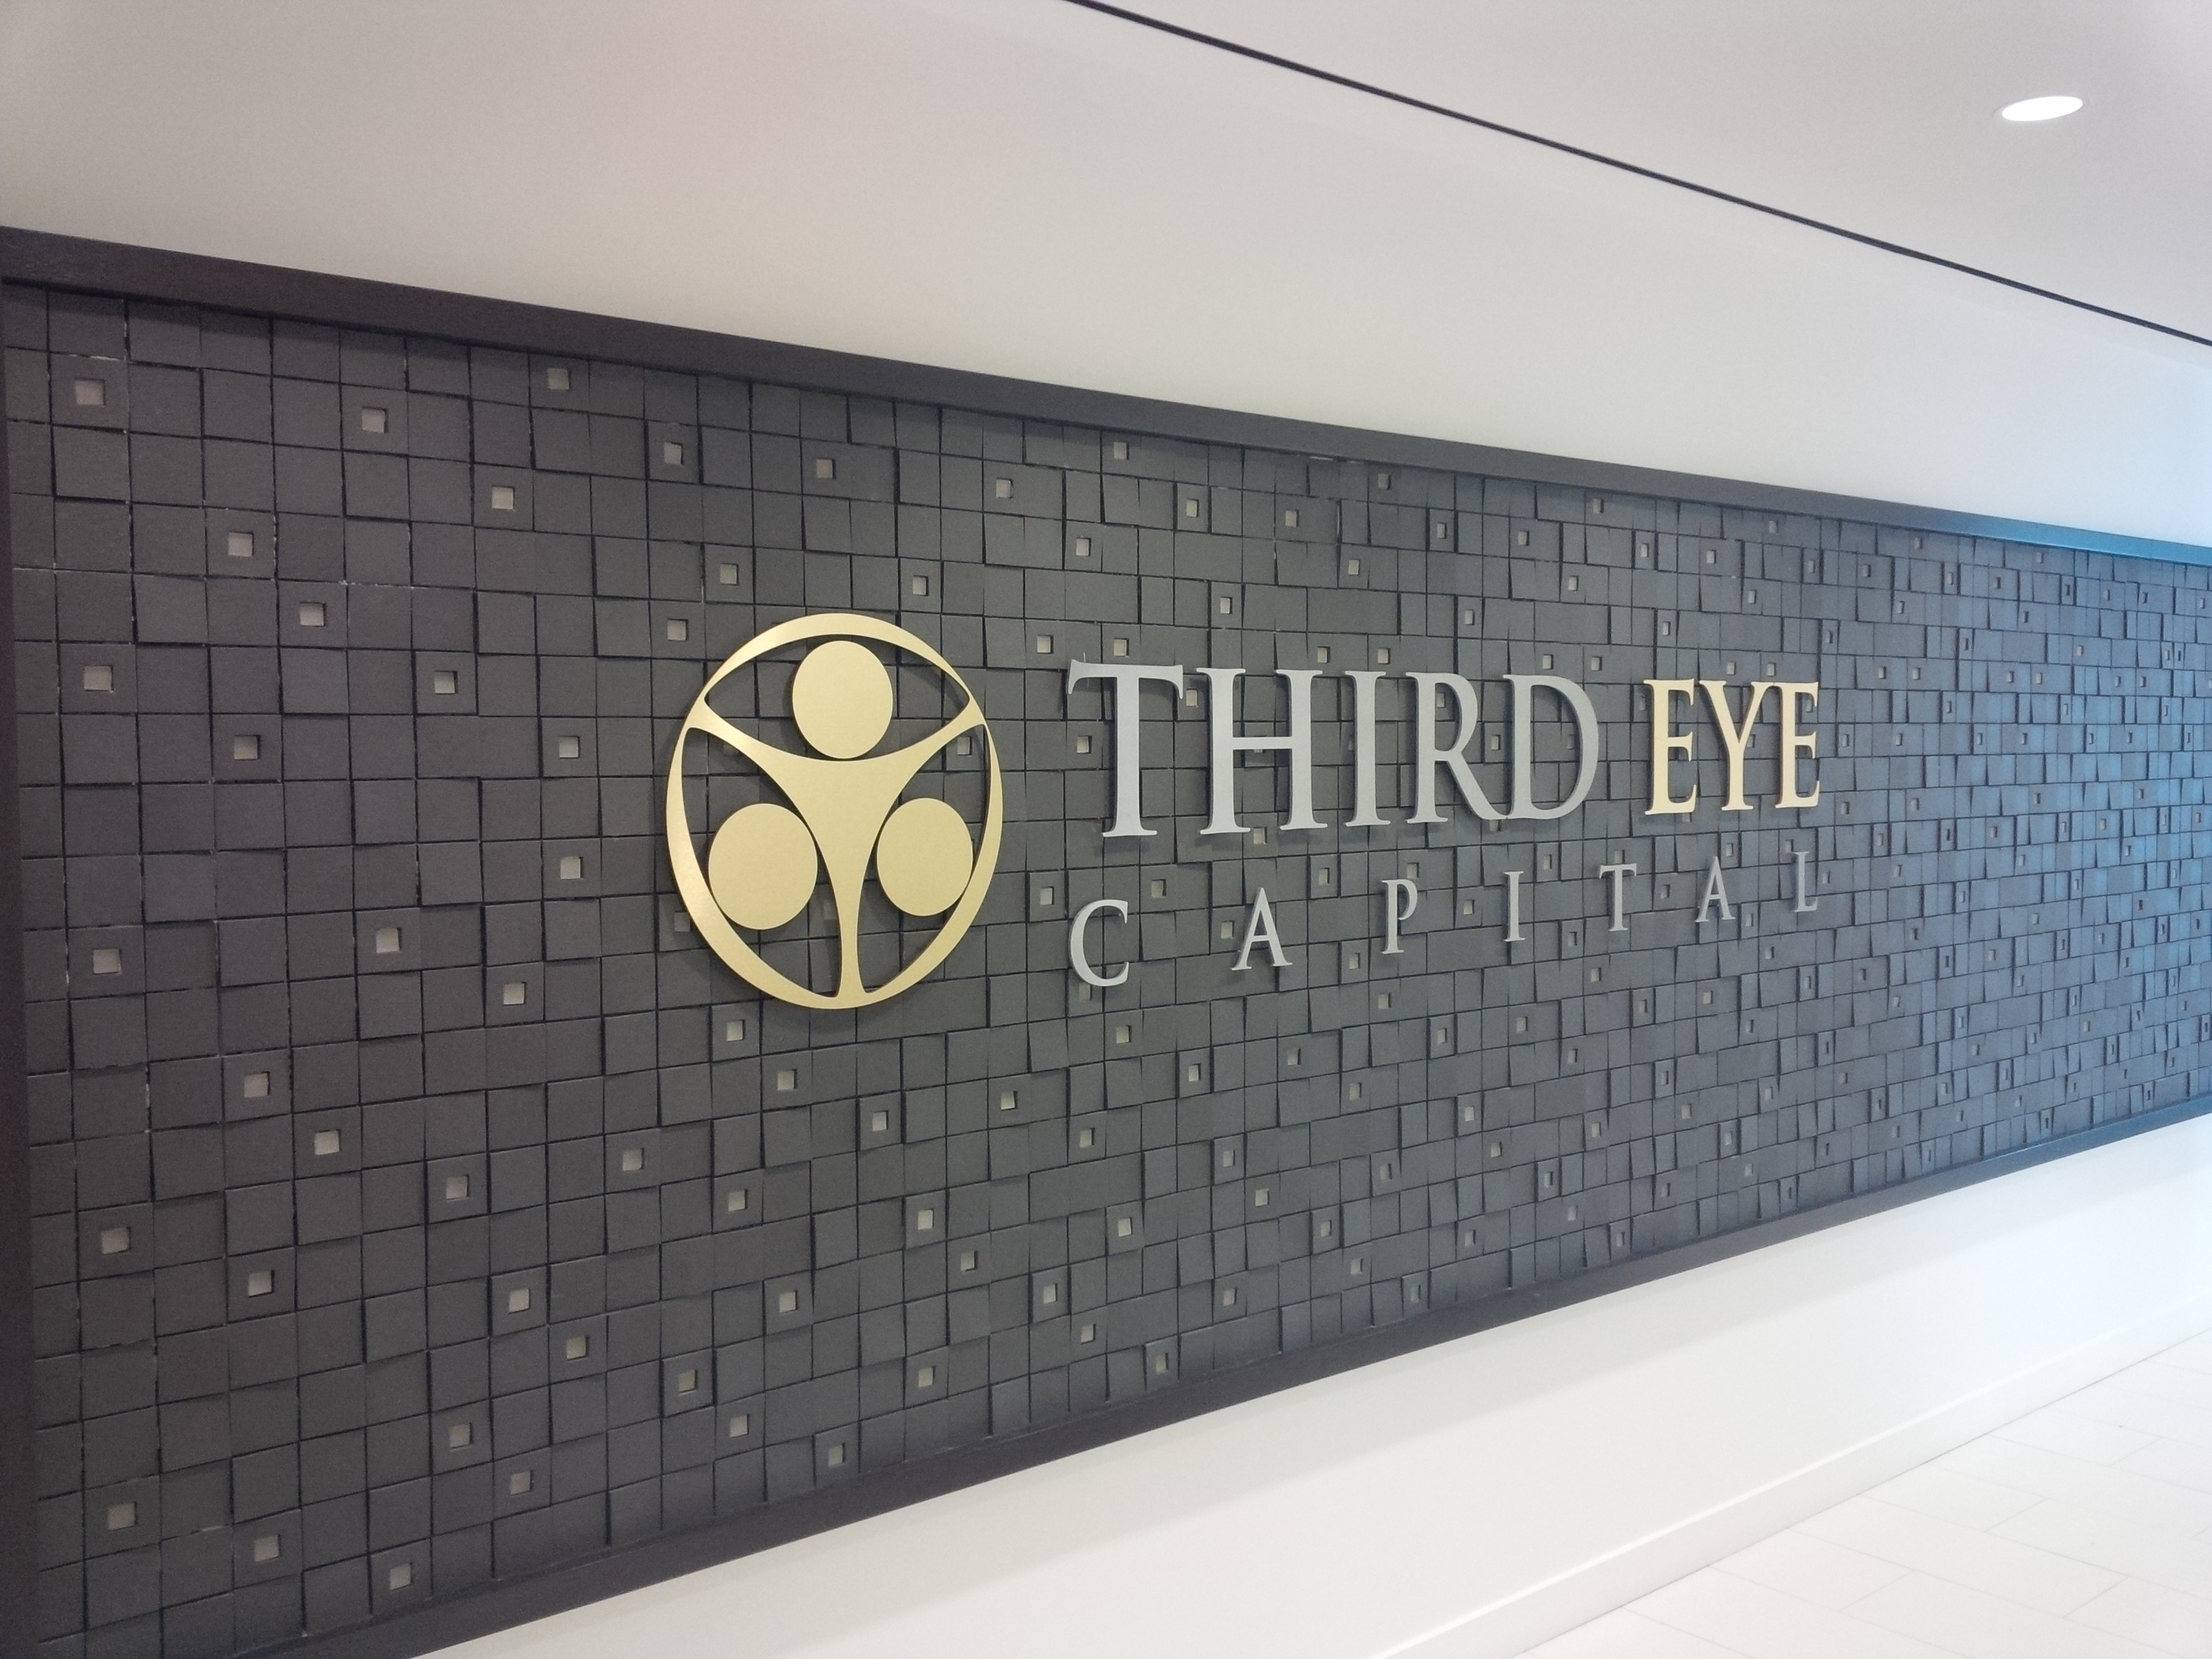 Third Eye Capital